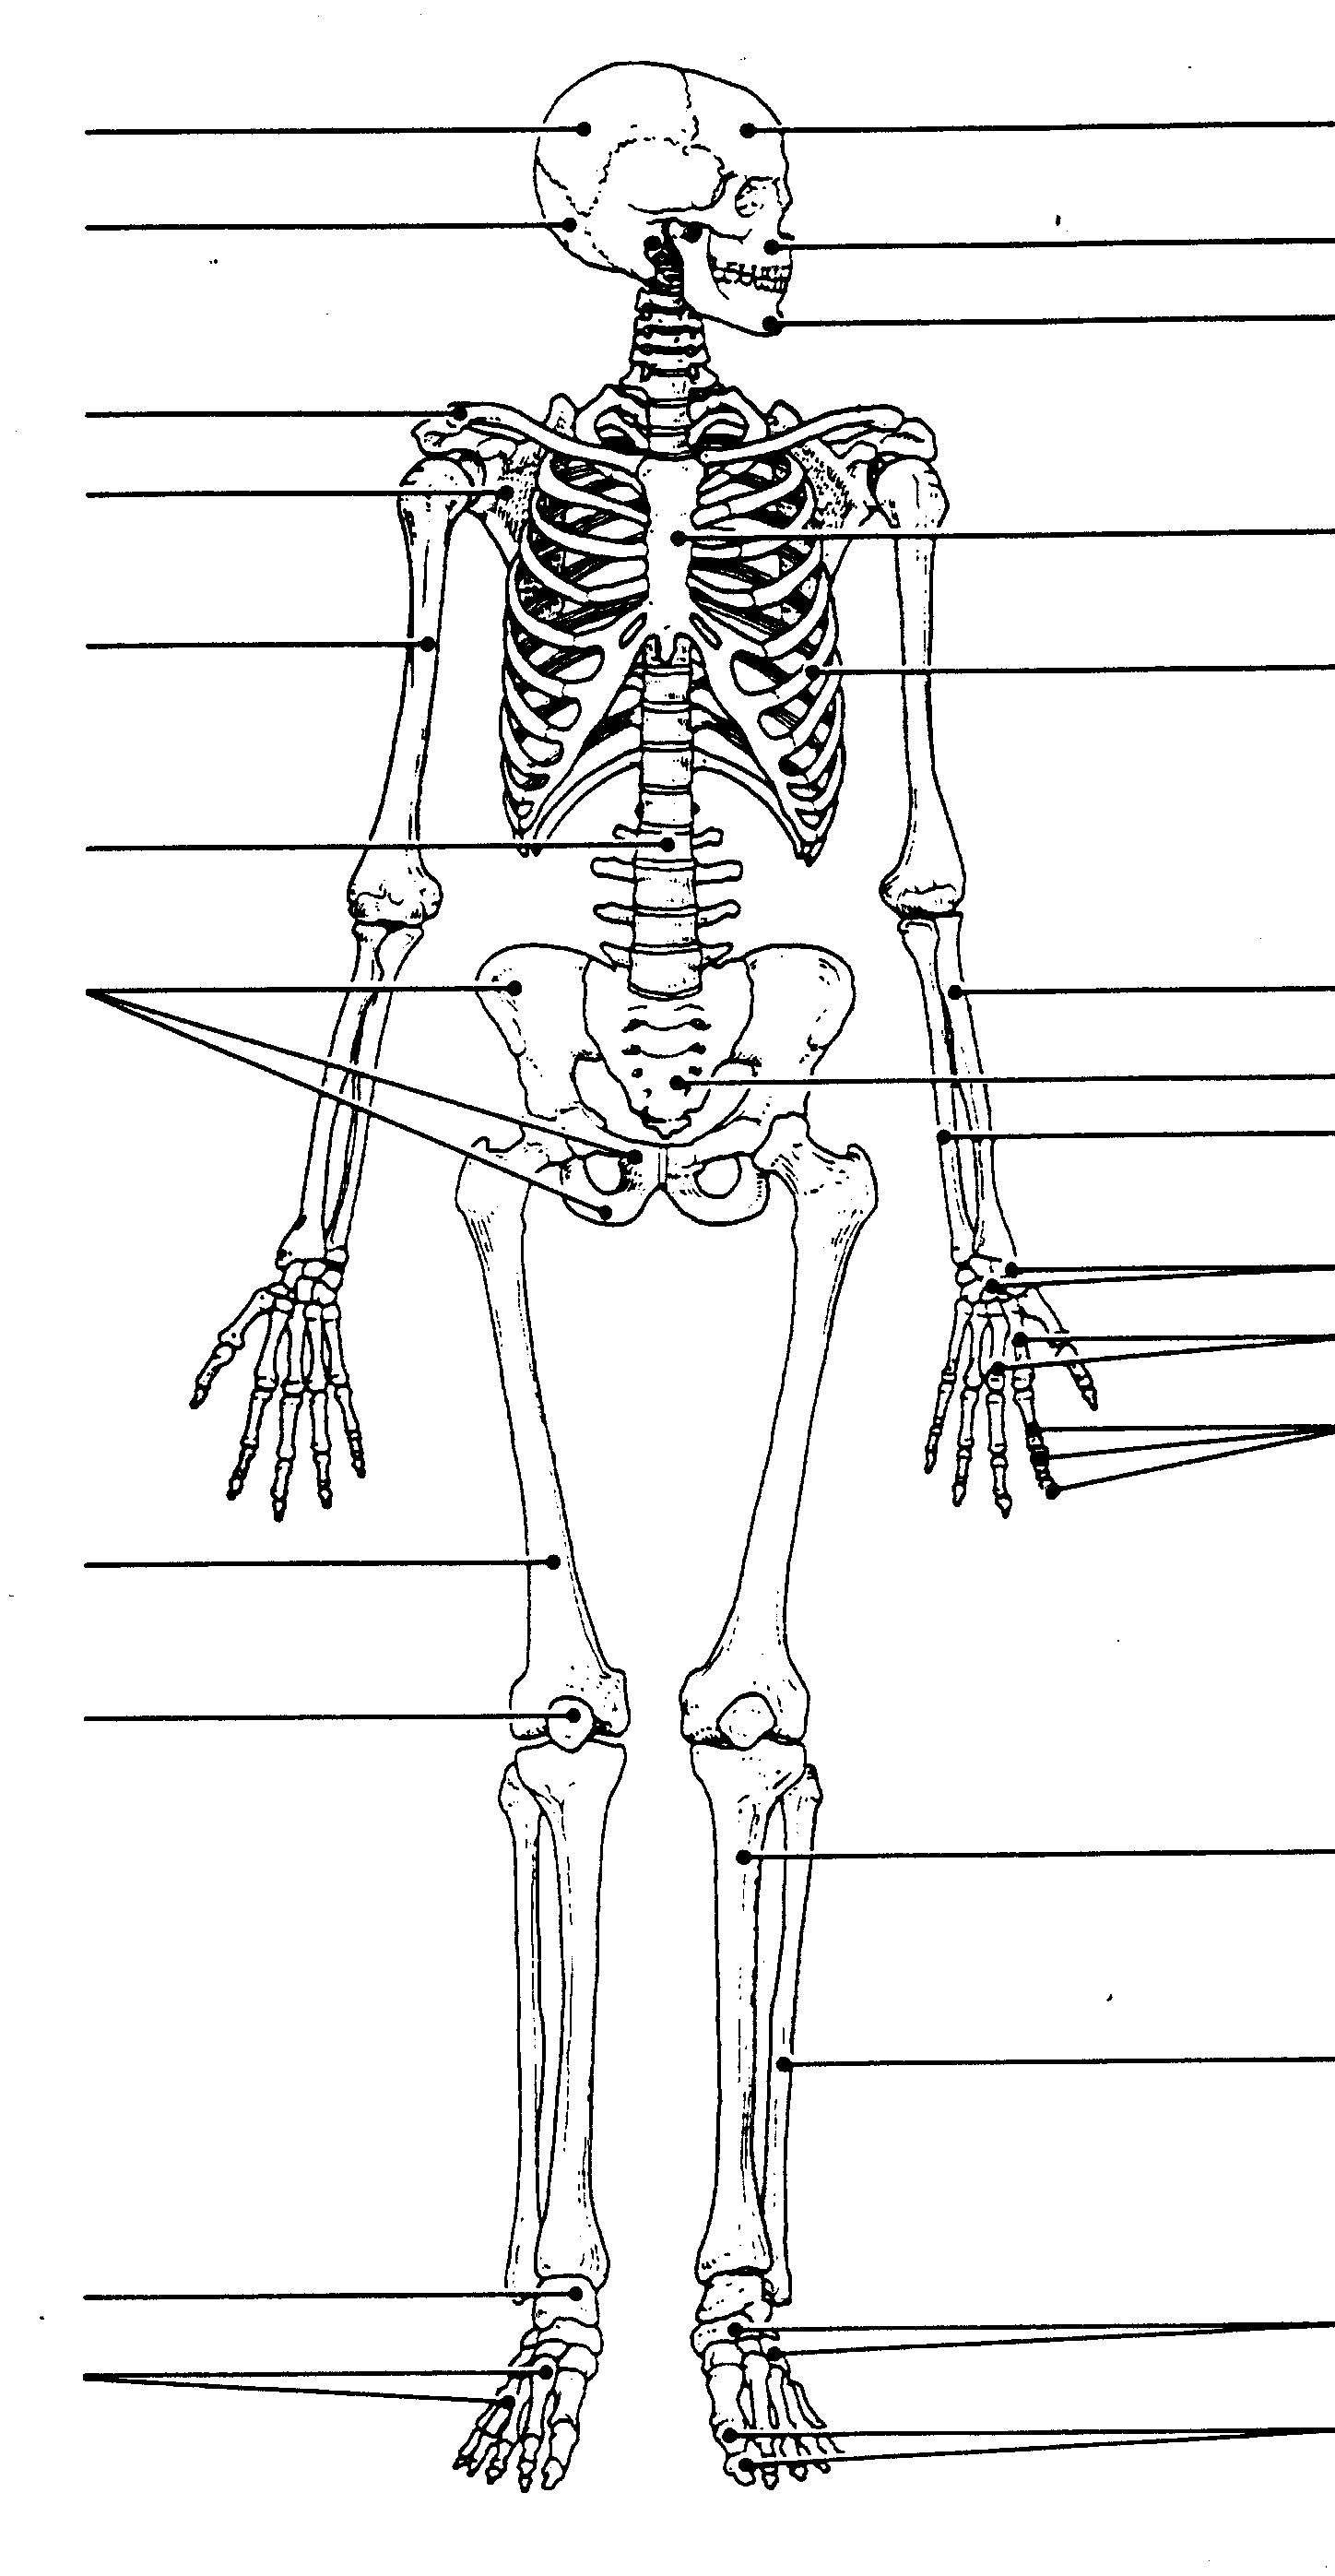 small resolution of human skeleton diagram unlabeled human skeleton diagram unlabeled blank human skeleton diagram unlabeled human skeleton